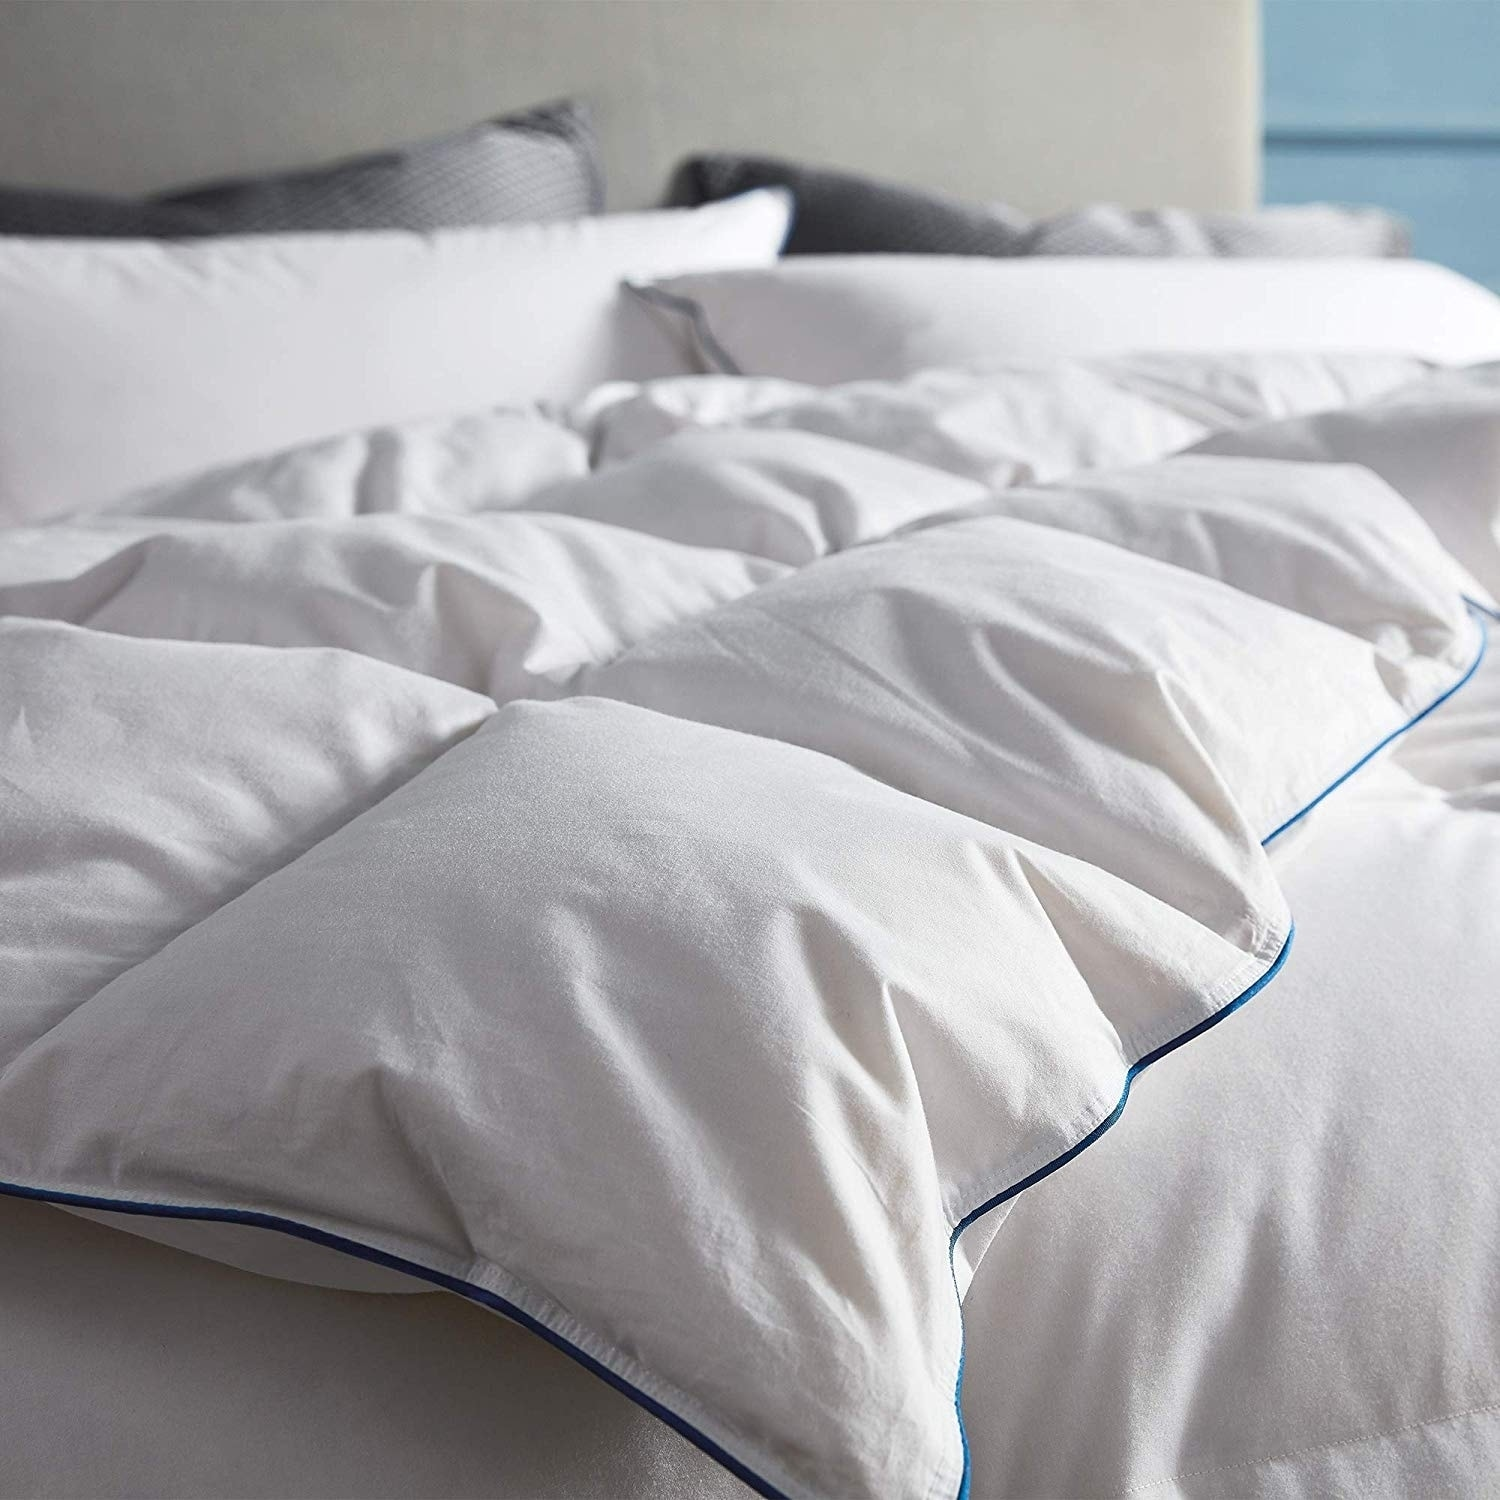 Hgoose Premium 70 Hungarian Goose Down Comforter Oversized On Sale Overstock 30116627